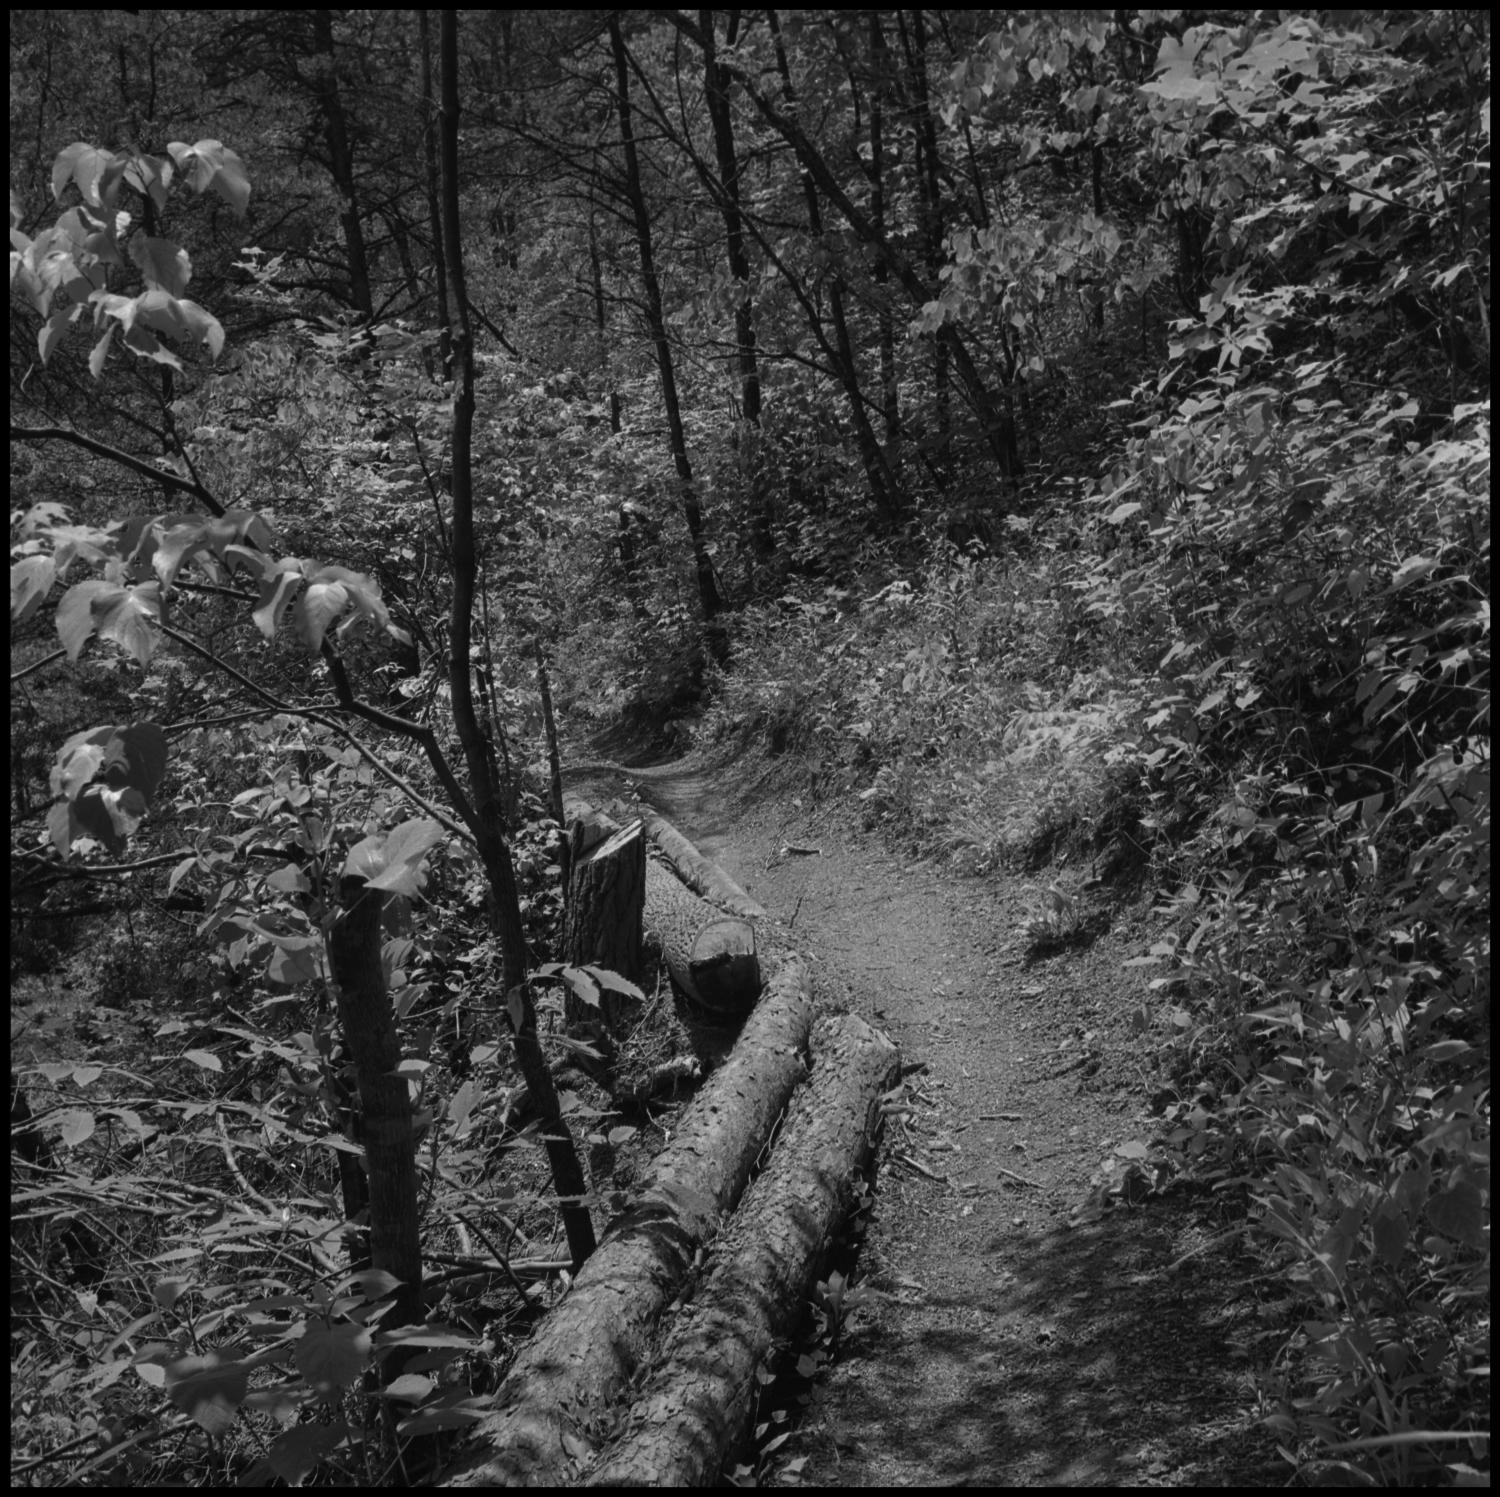 [Foot path], Photograph of a hilly trail through a wooded area. The path is lined with logs on one side.,